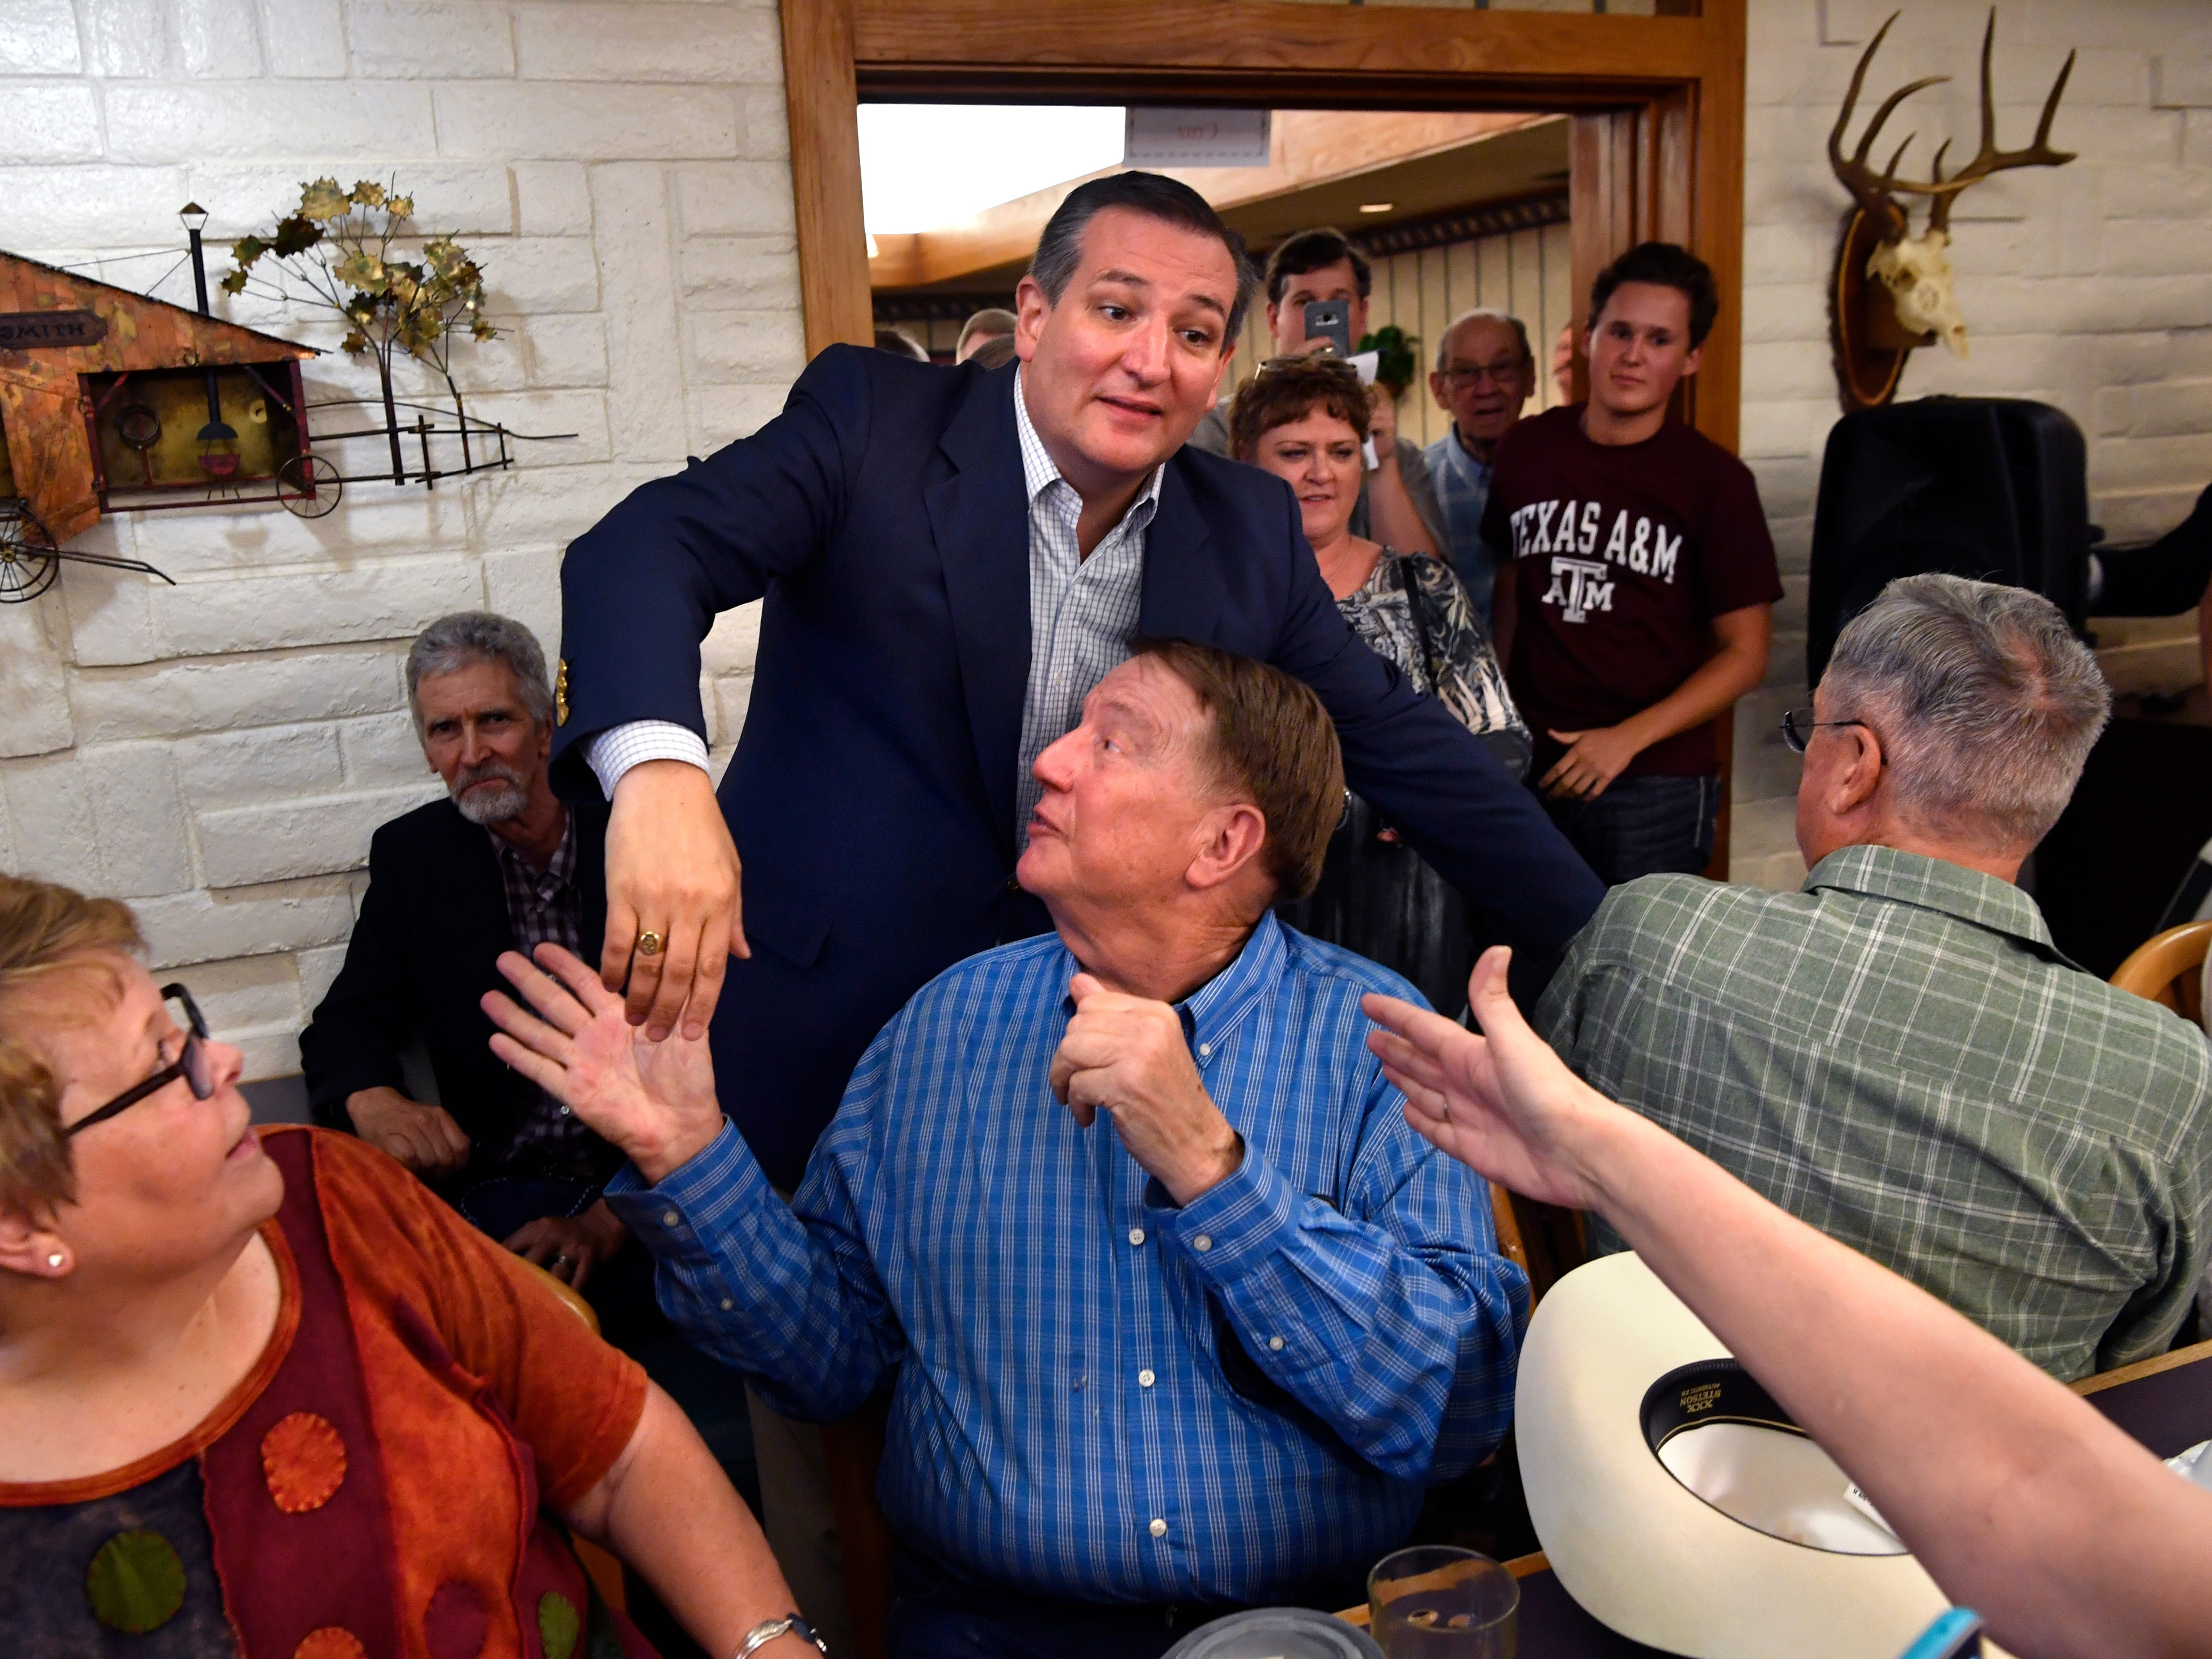 Squeezing through the crowded room, Senator Ted Cruz shakes as many hands as he can while making his way to the front Thursday August 9, 2018 in Brownwood. Cruz spoke to and greeted supporters for over 90 minutes at a town hall meeting in Underwood's Cafeteria.